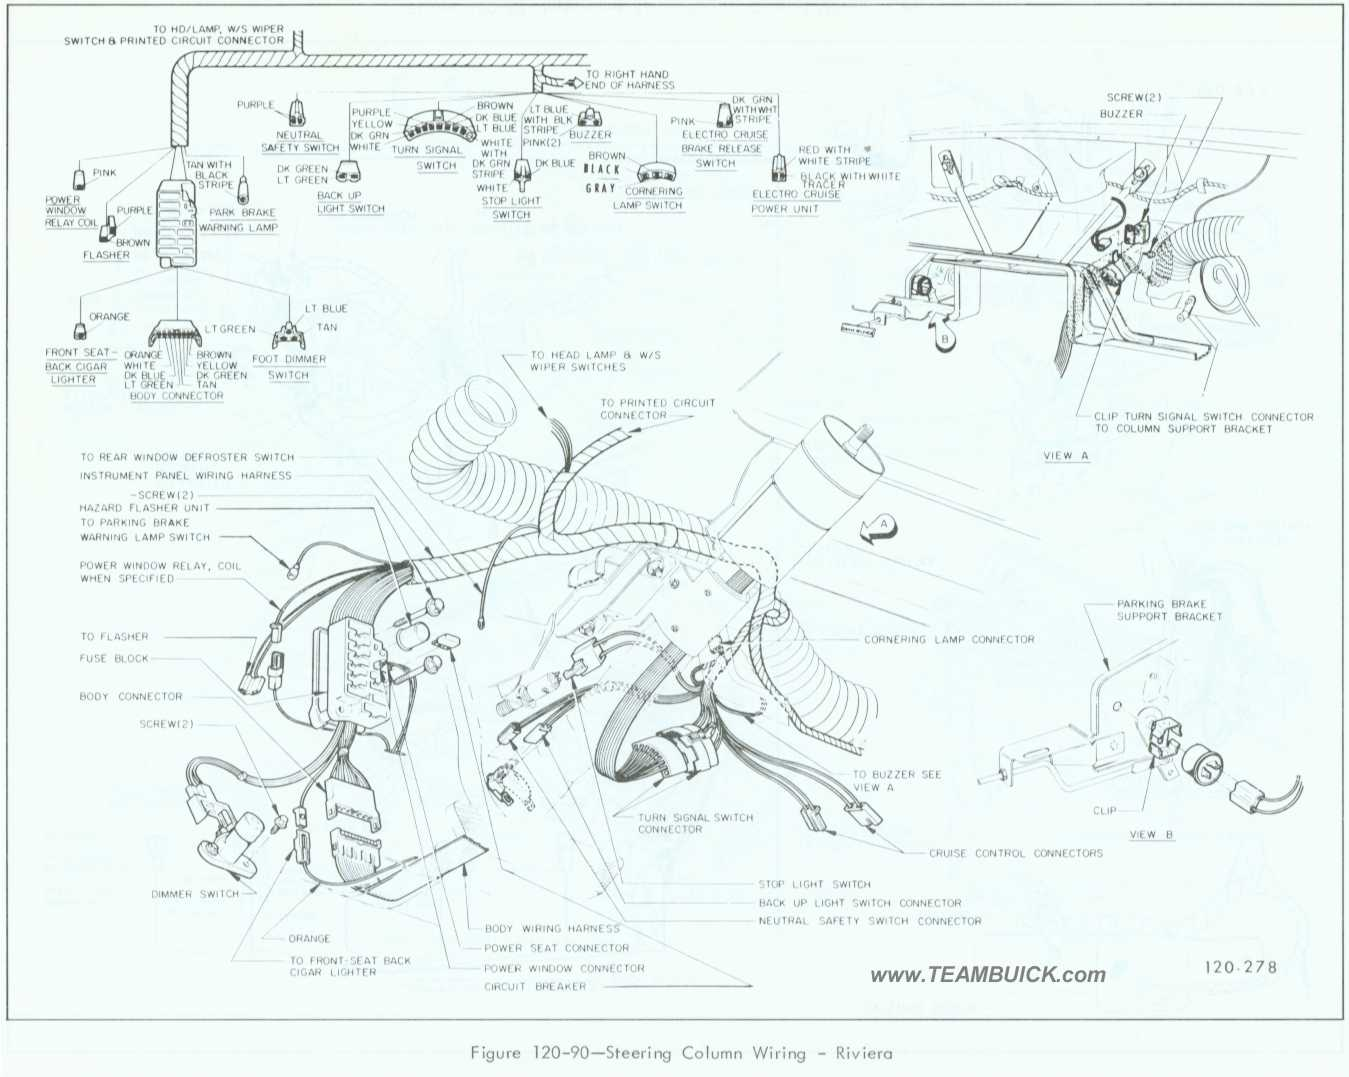 1987 Buick Grand National Wiring Diagram. Buick. Wiring